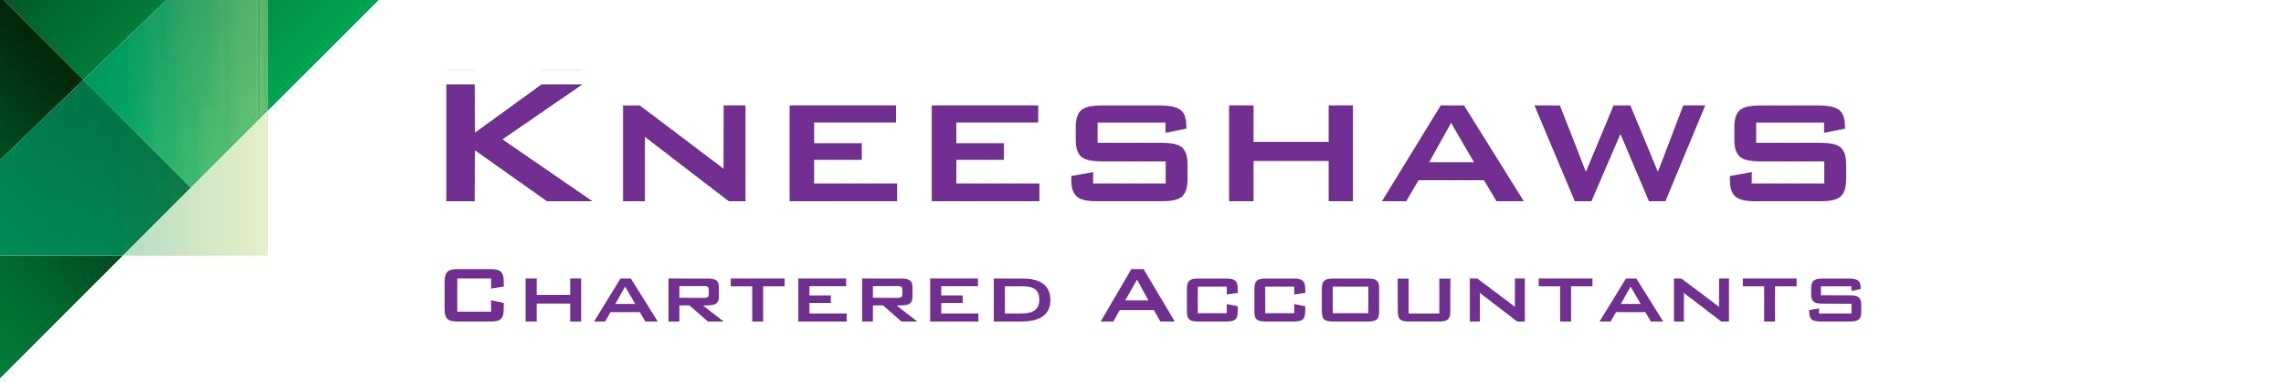 Kneeshaws Chartered Accountants